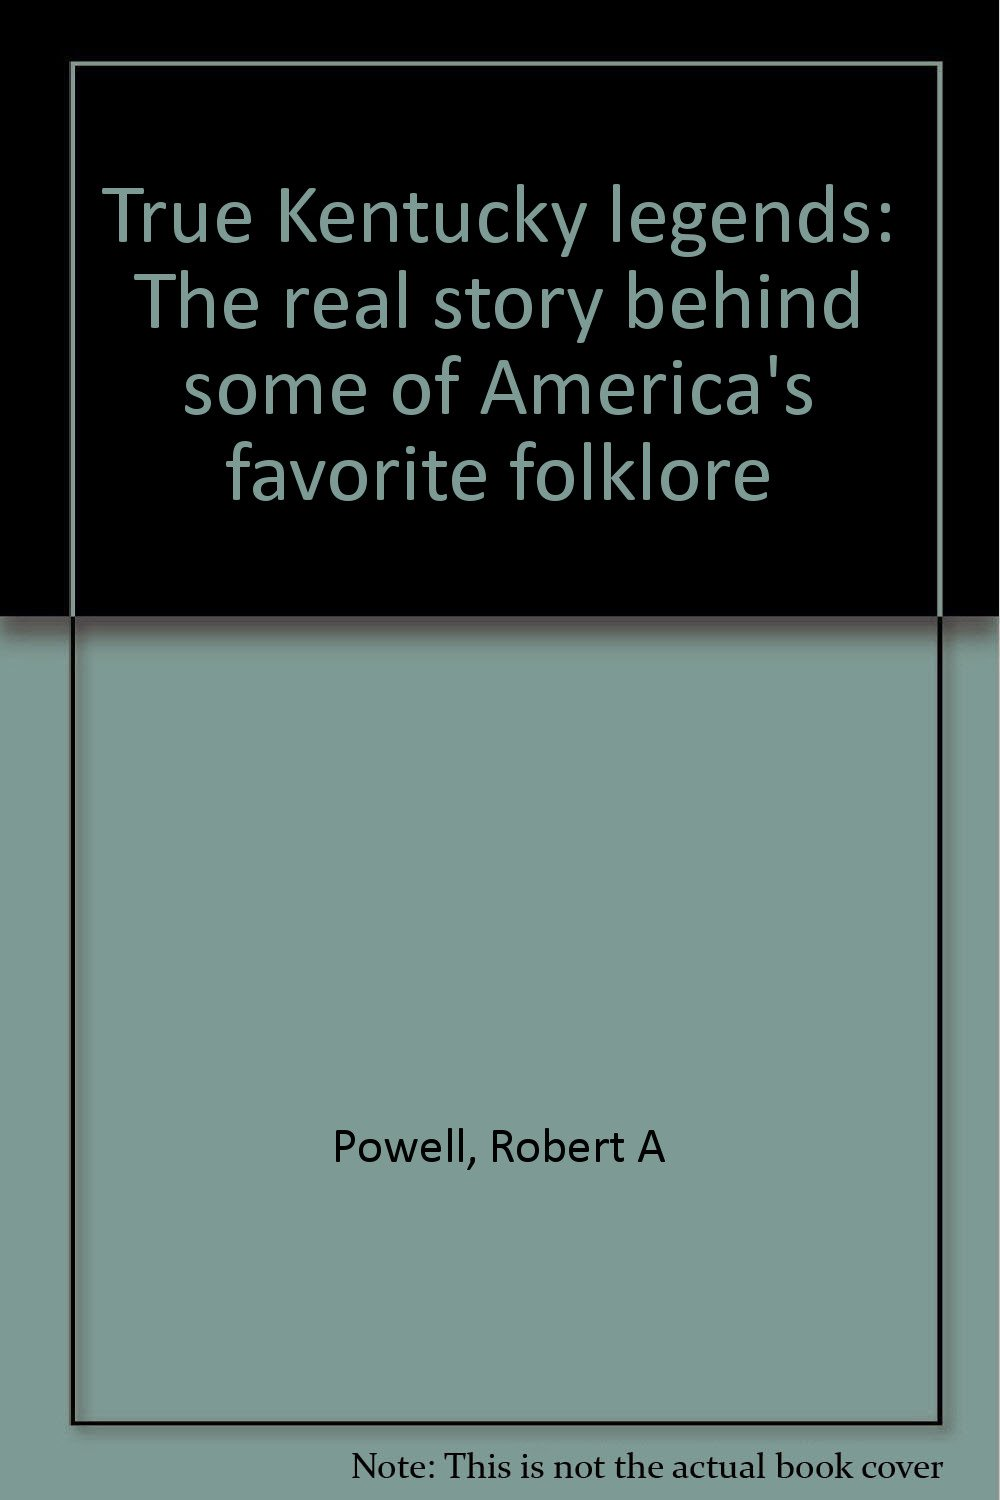 Read Online True Kentucky legends: The real story behind some of America's favorite folklore pdf